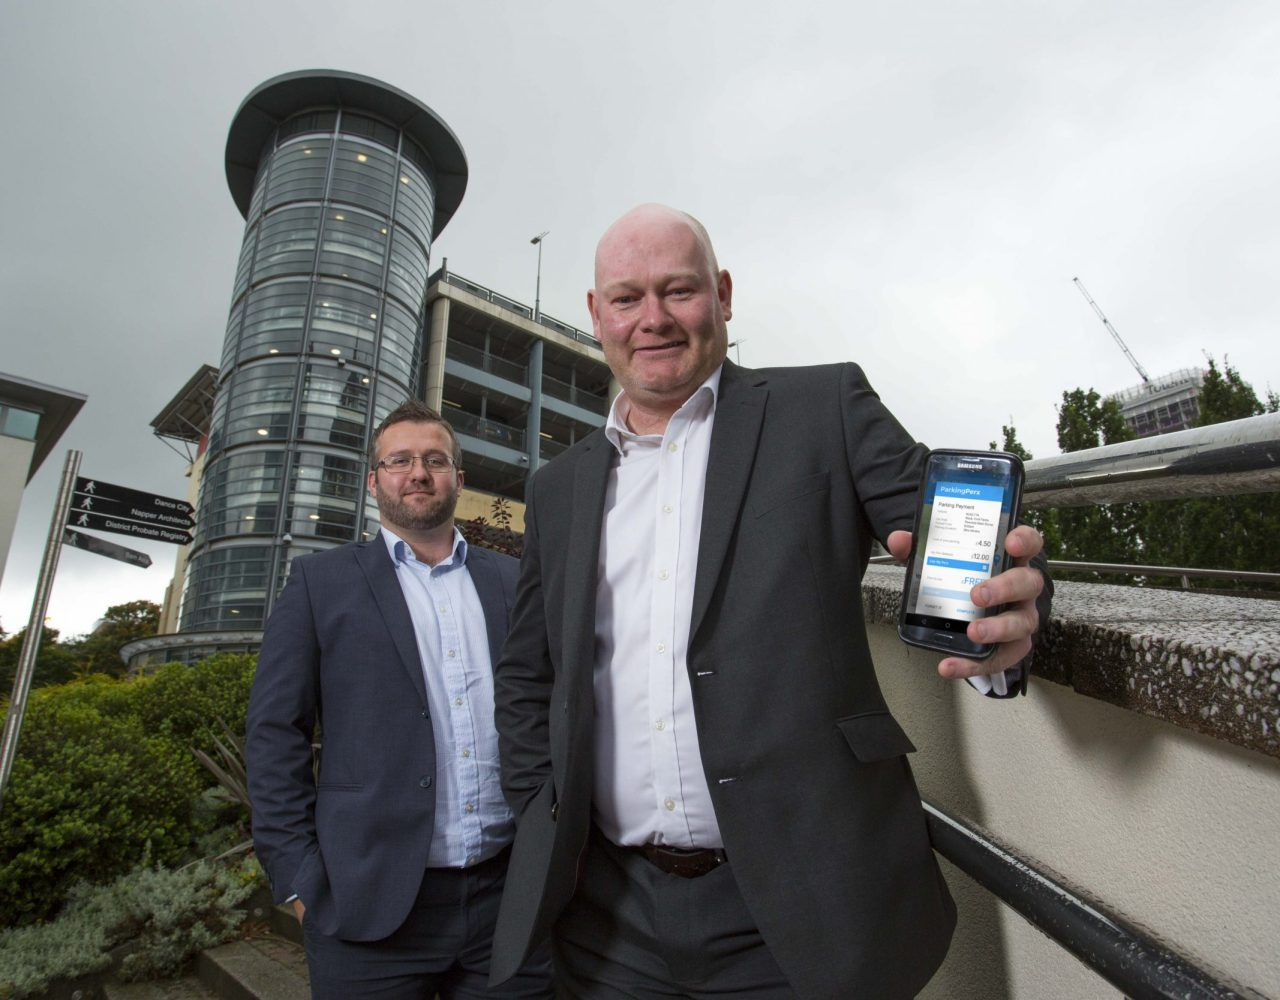 Entrepreneur secures £325,000 investment to launch parking app